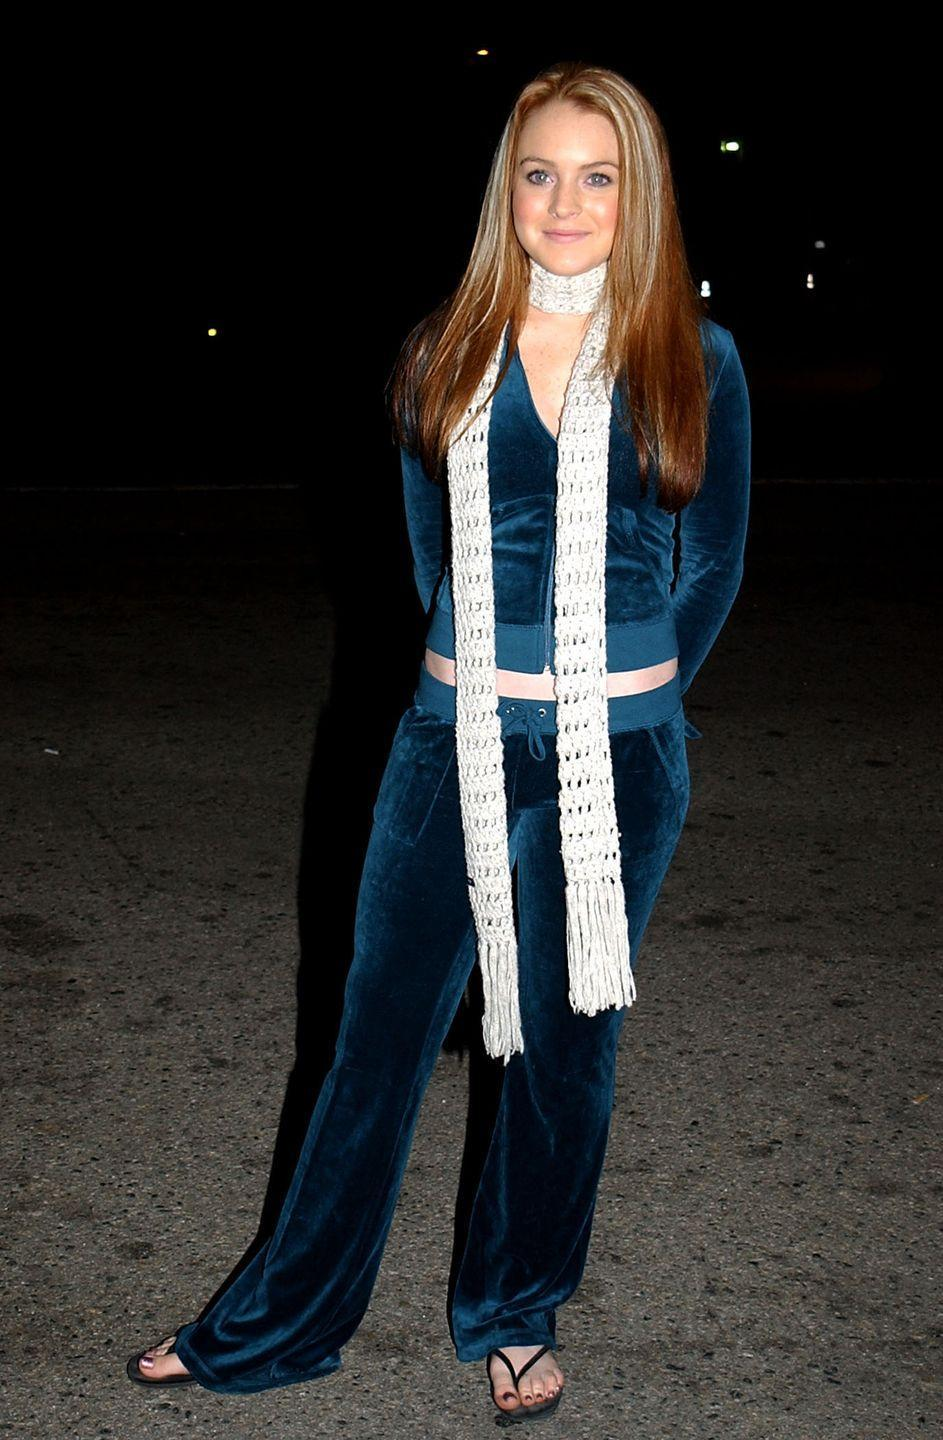 <p>The go-to ensemble of every female, age 11 to 40. As you'll notice, 18-year-old Lindsay Lohan made hers even more 2000s-worthy with a skinny scarf.</p>